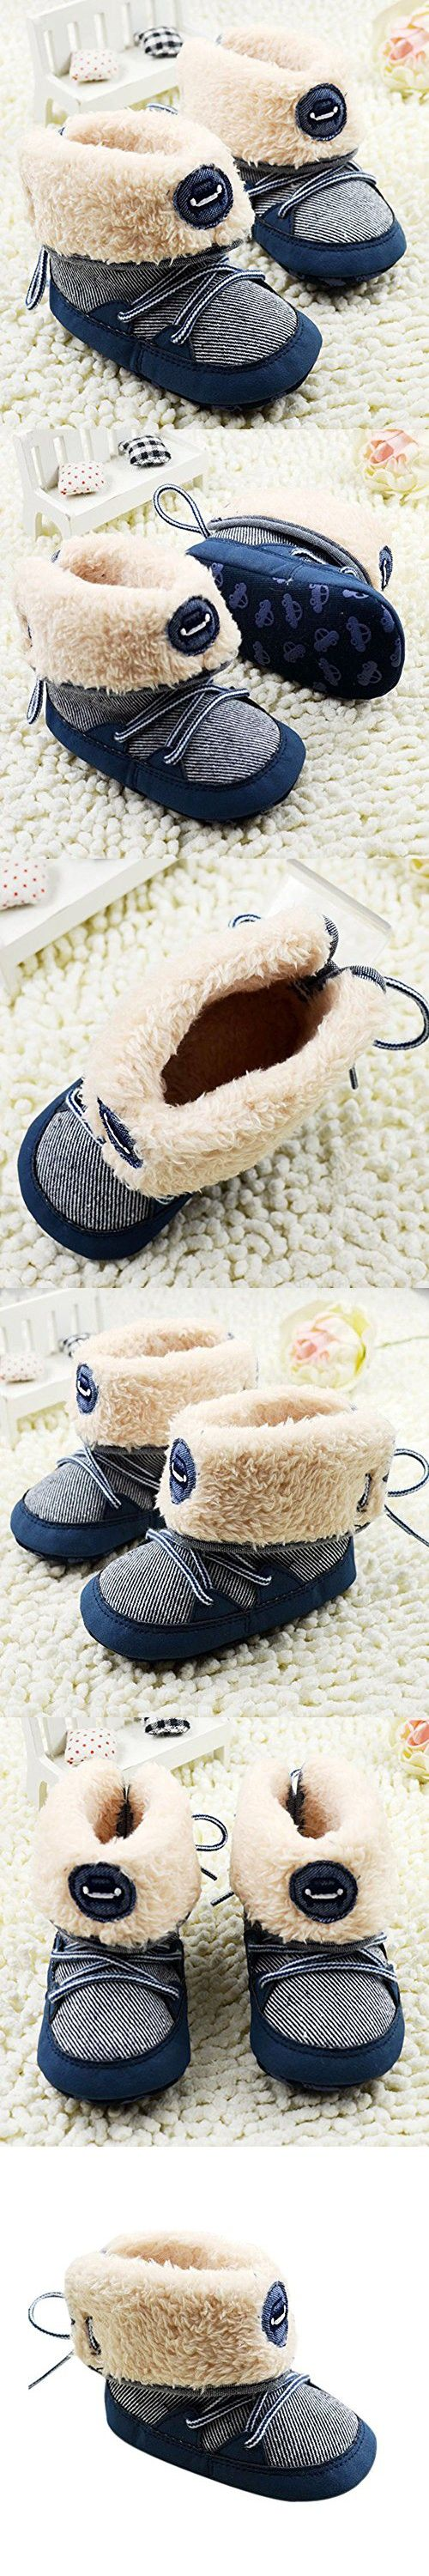 Norbi Winter Baby Warm Stripes Boots Lace Up Booties High Boots